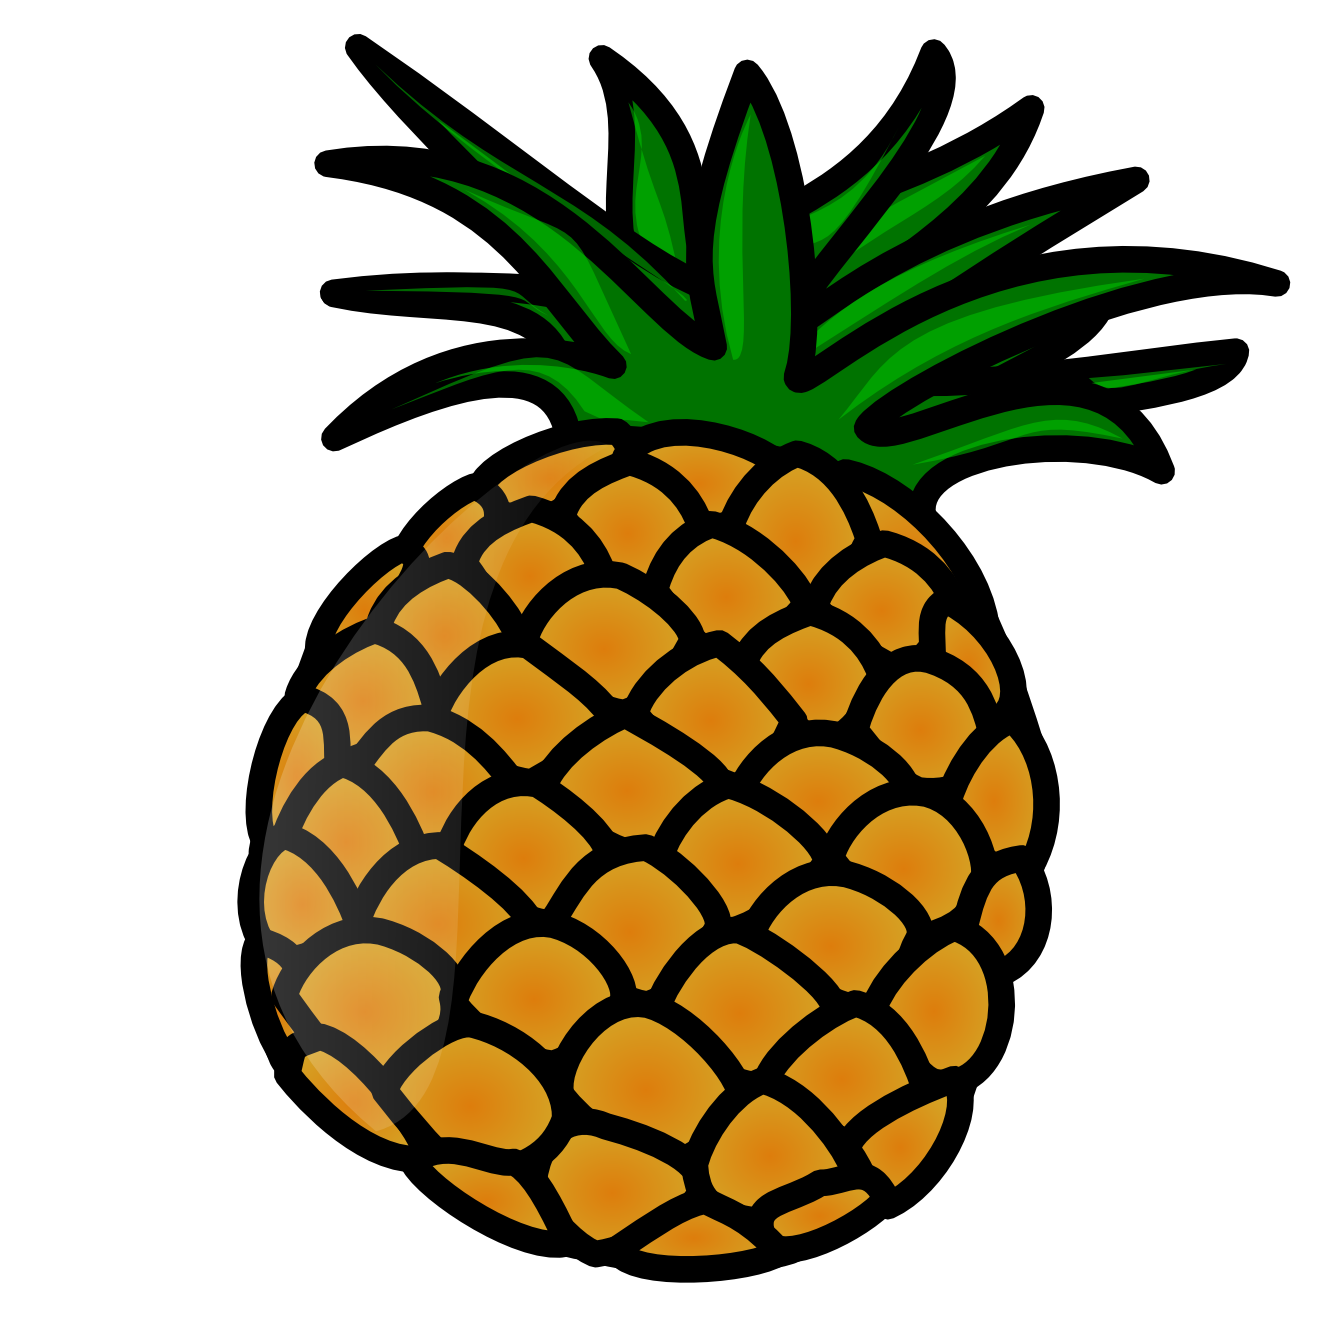 Flowers clipart pineapple. With clip art at